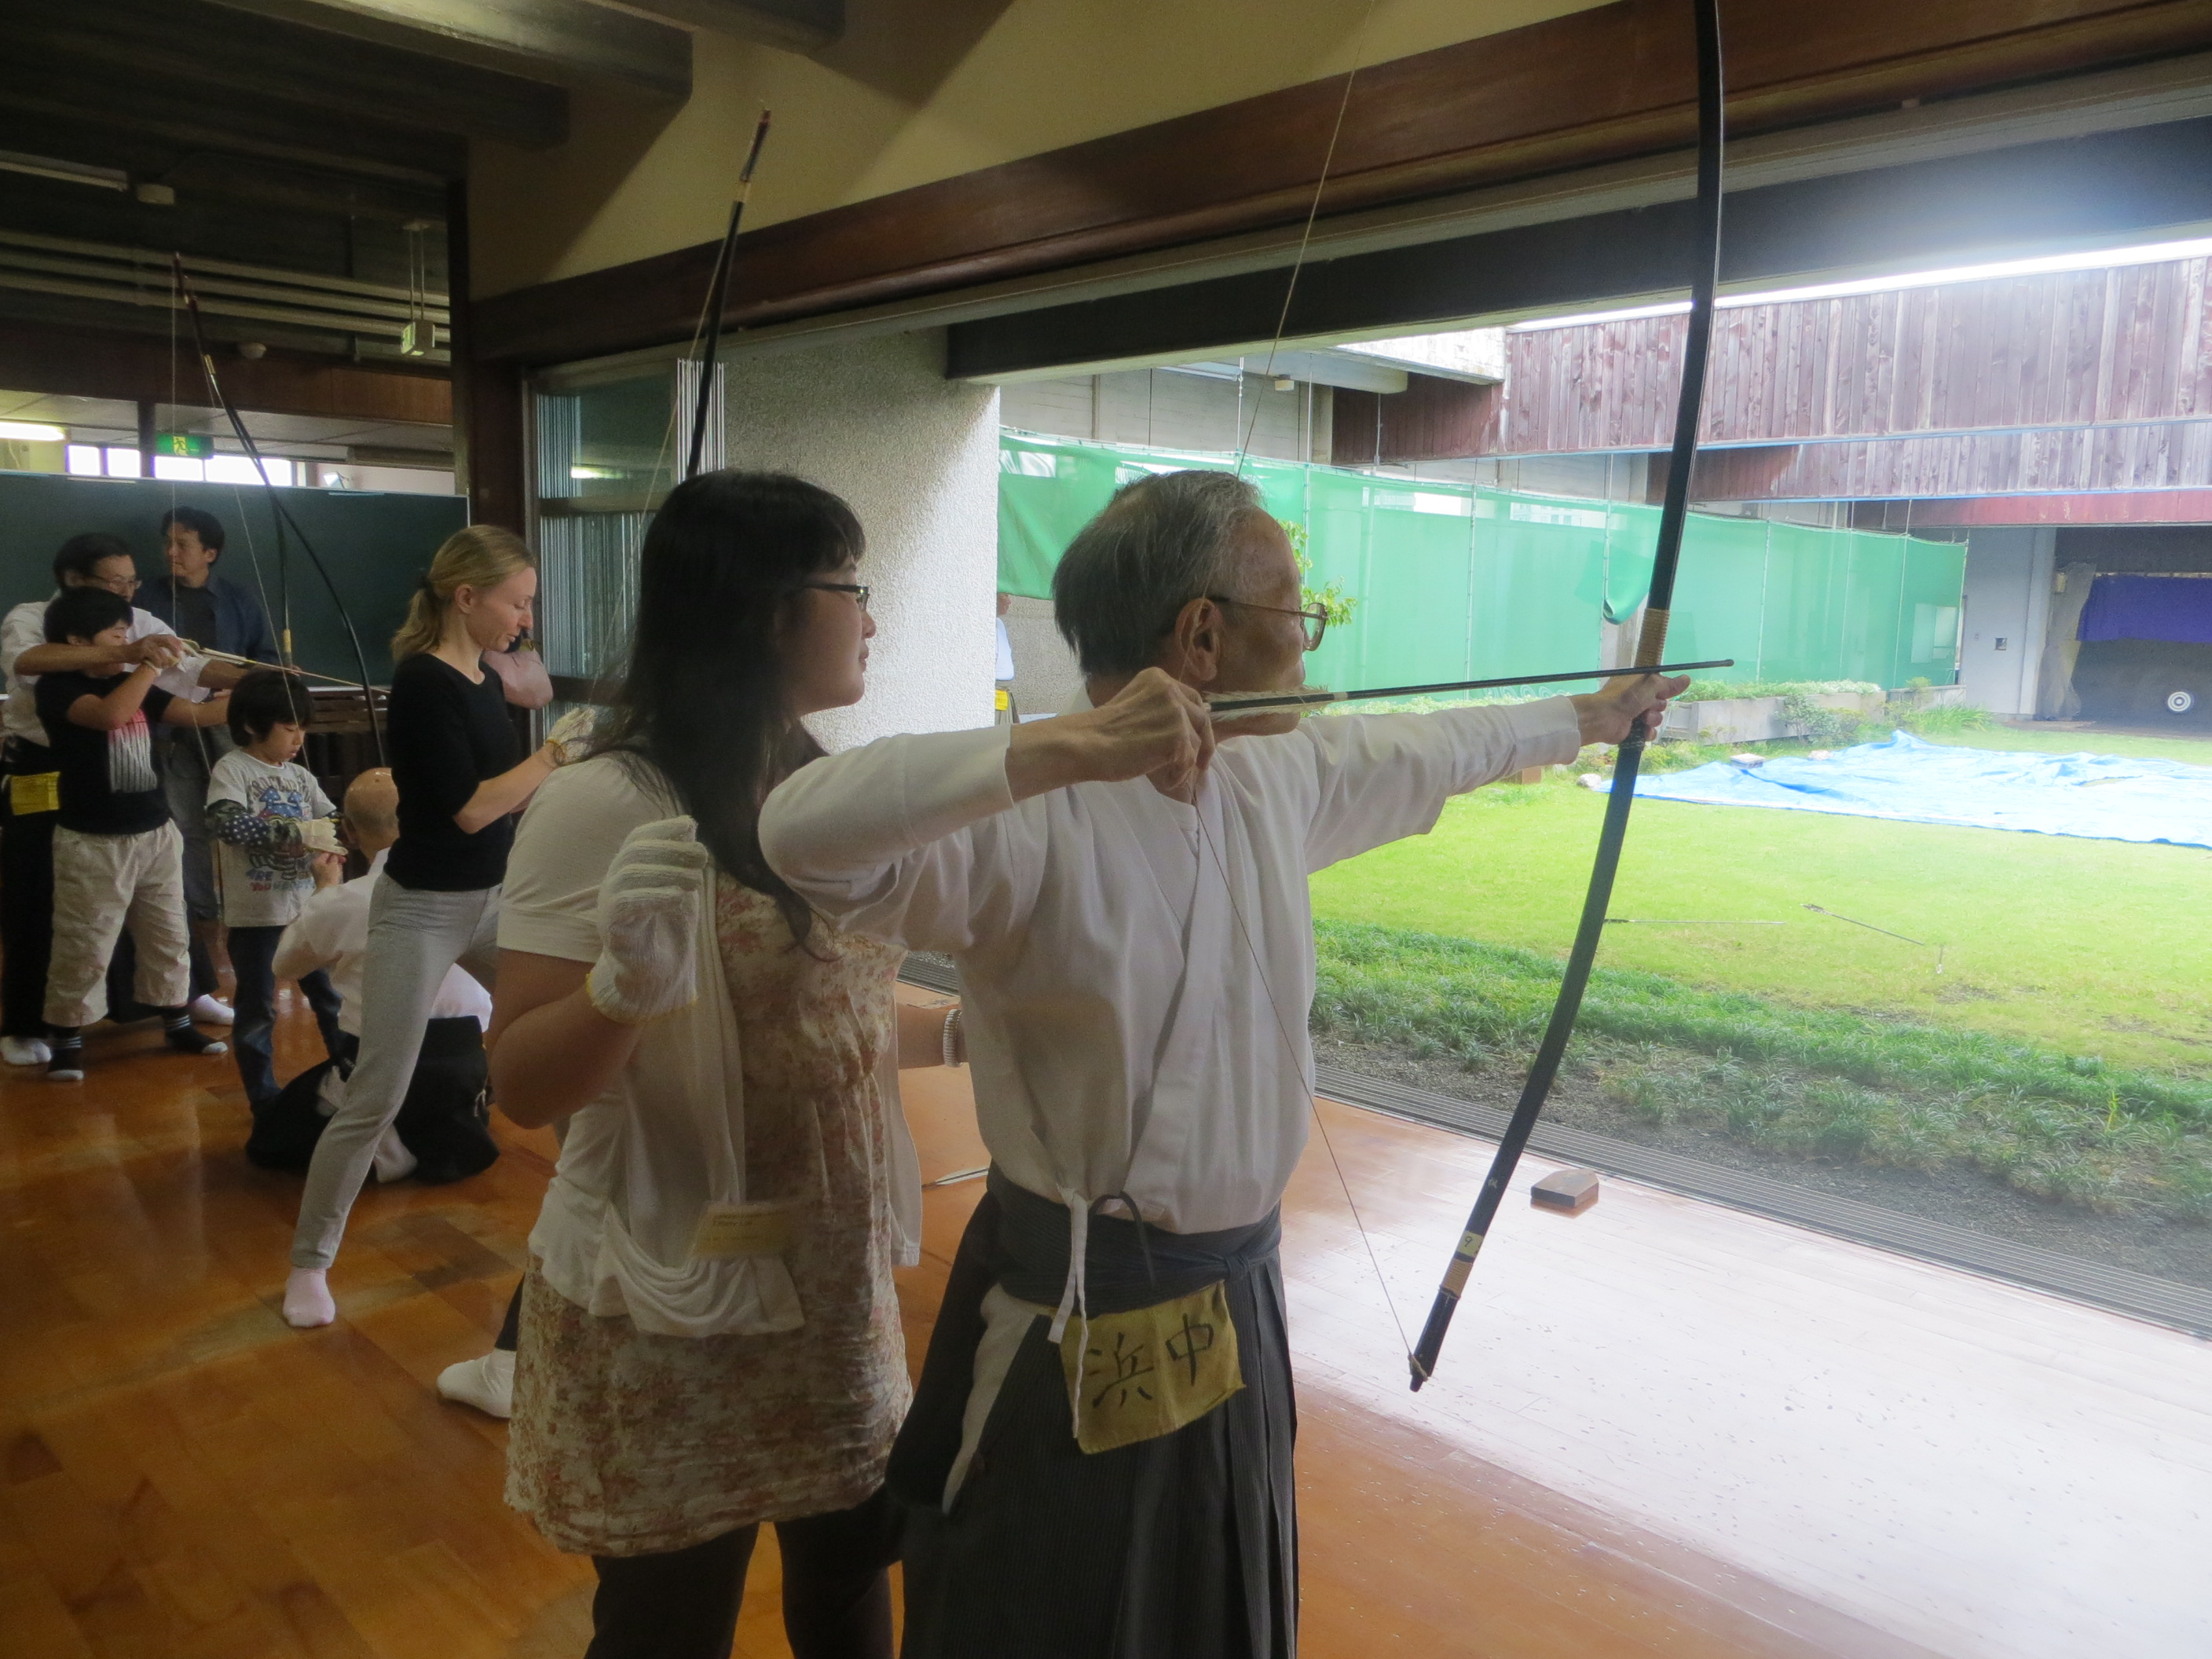 Experiencing kyudo japanese archery tokyo cheapo fandeluxe Gallery